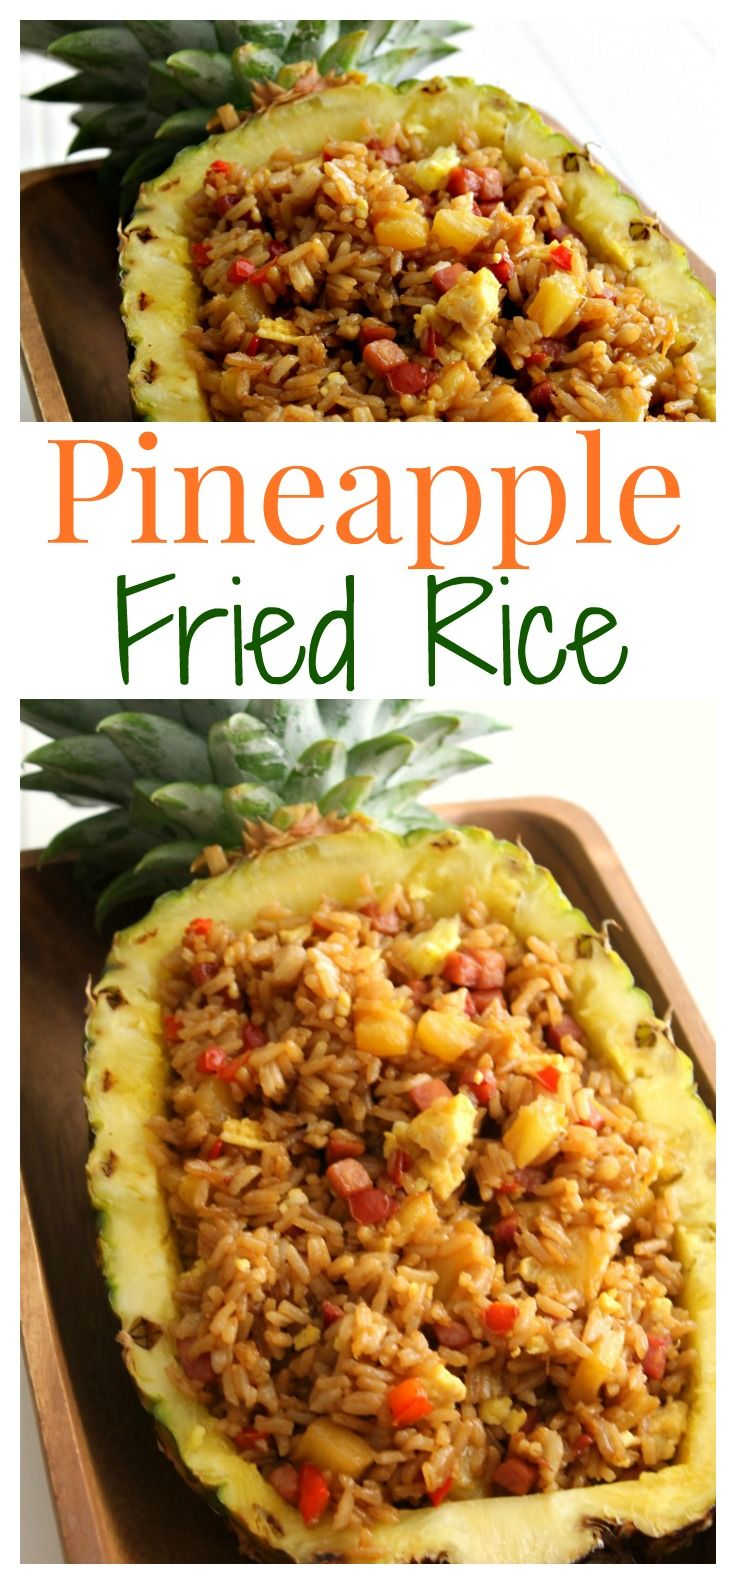 This fresh Pineapple Fried Rice recipe is a great way to celebrate the release of Disney's Moana. Ham, pineapple, and peppers are perfect compliments to each other in this yummy fried rice.